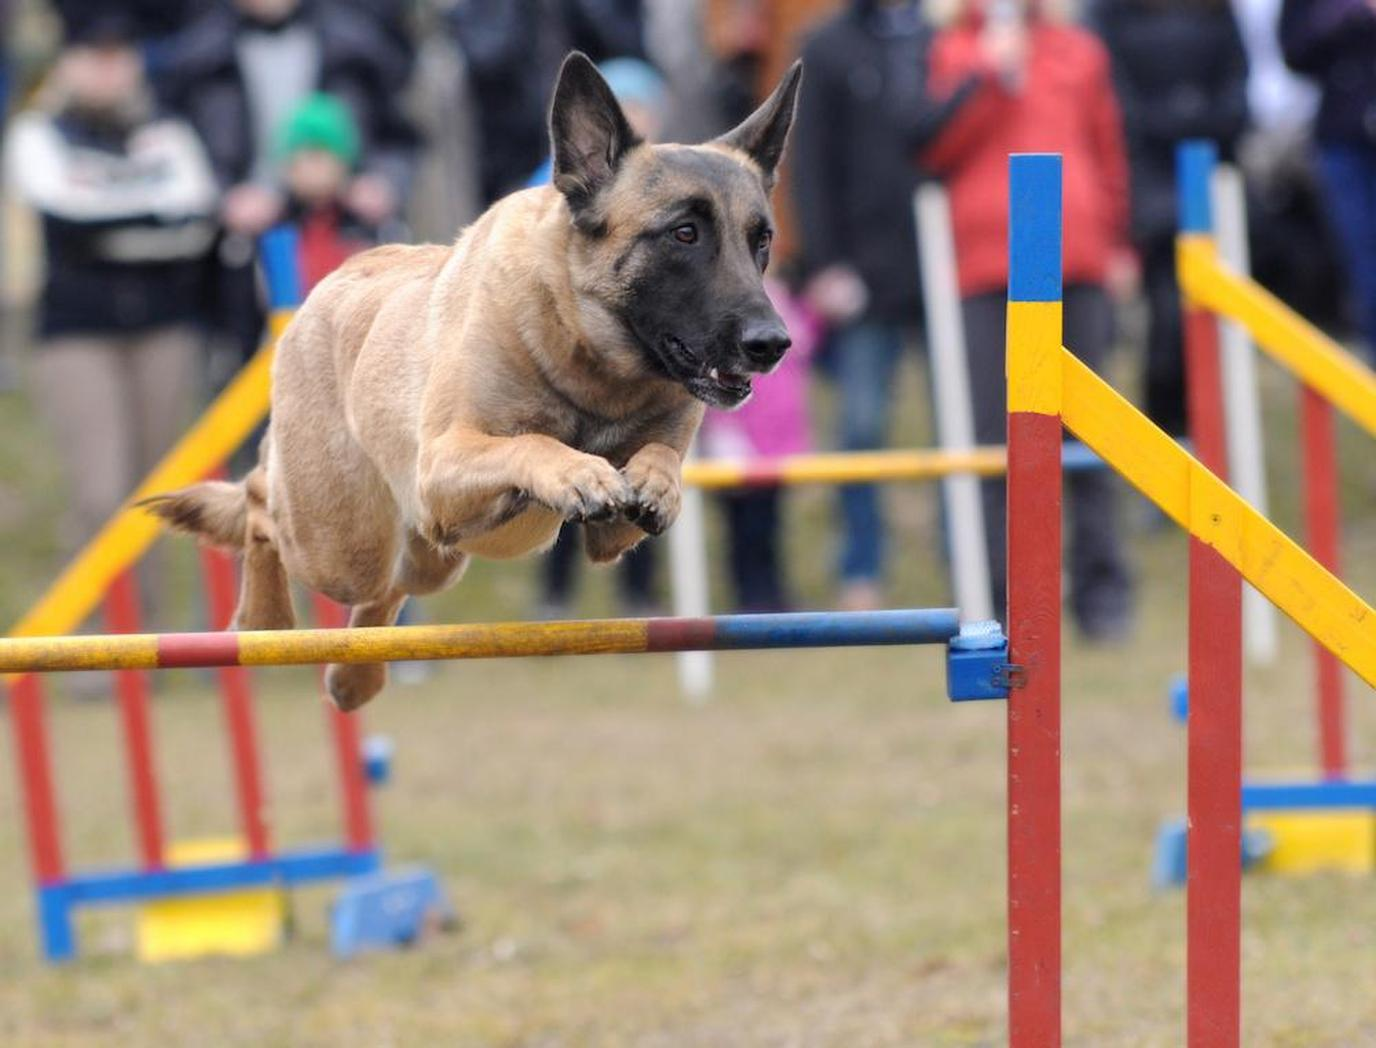 Dogs Unleashed race event includes agility courses, flyball, obedience competition and more.